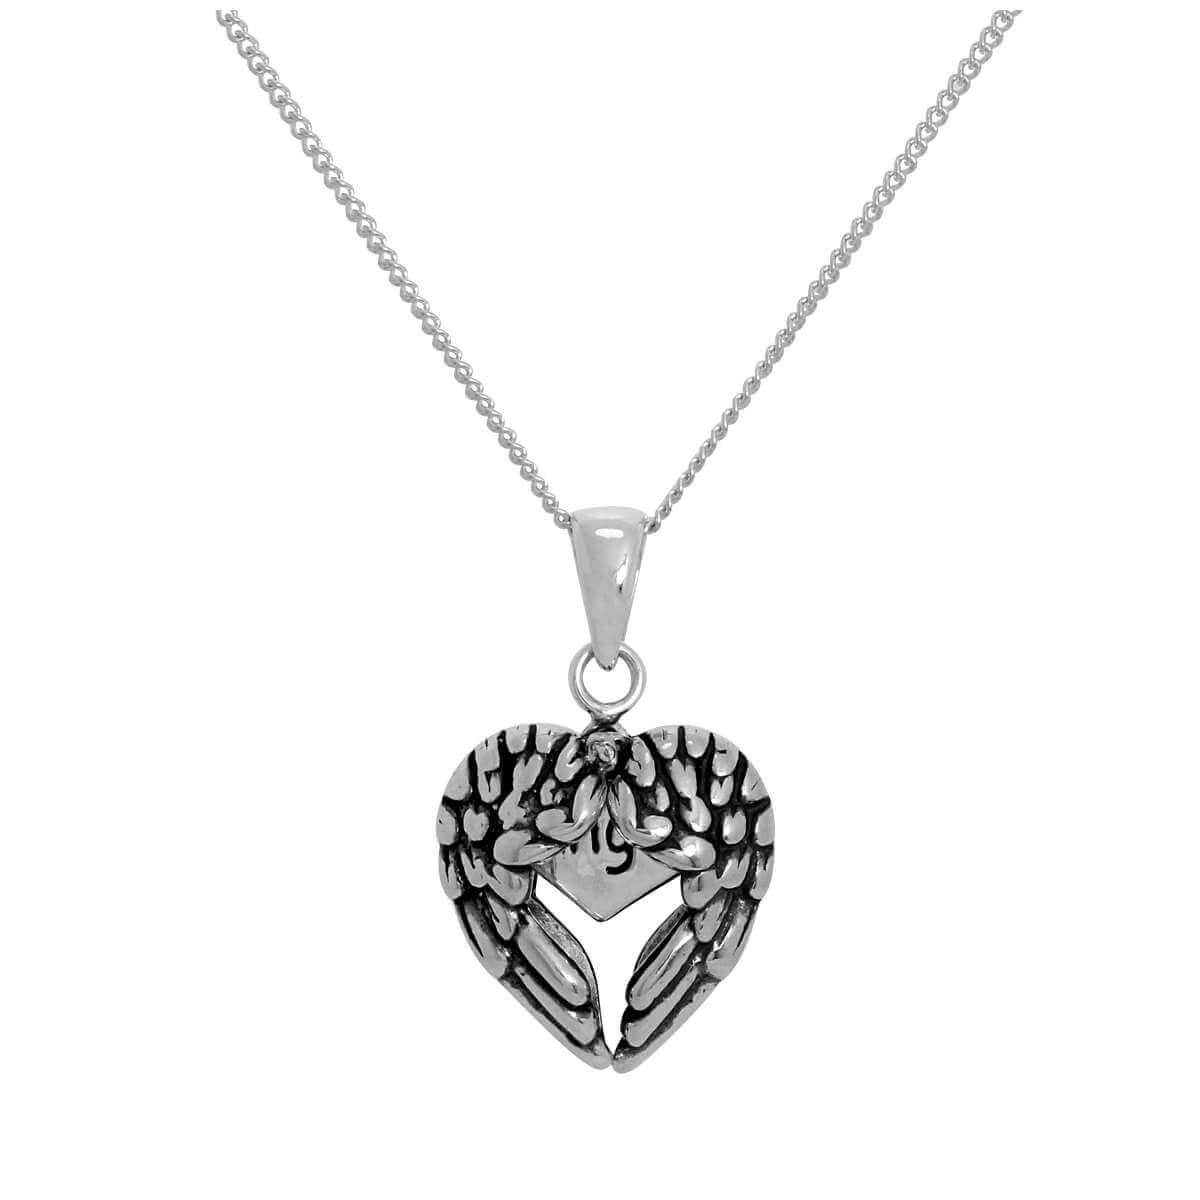 Sterling Silver Opening Angel Wings Heart Pendant with Little Heart Inside on Chain 14 - 32 Inches